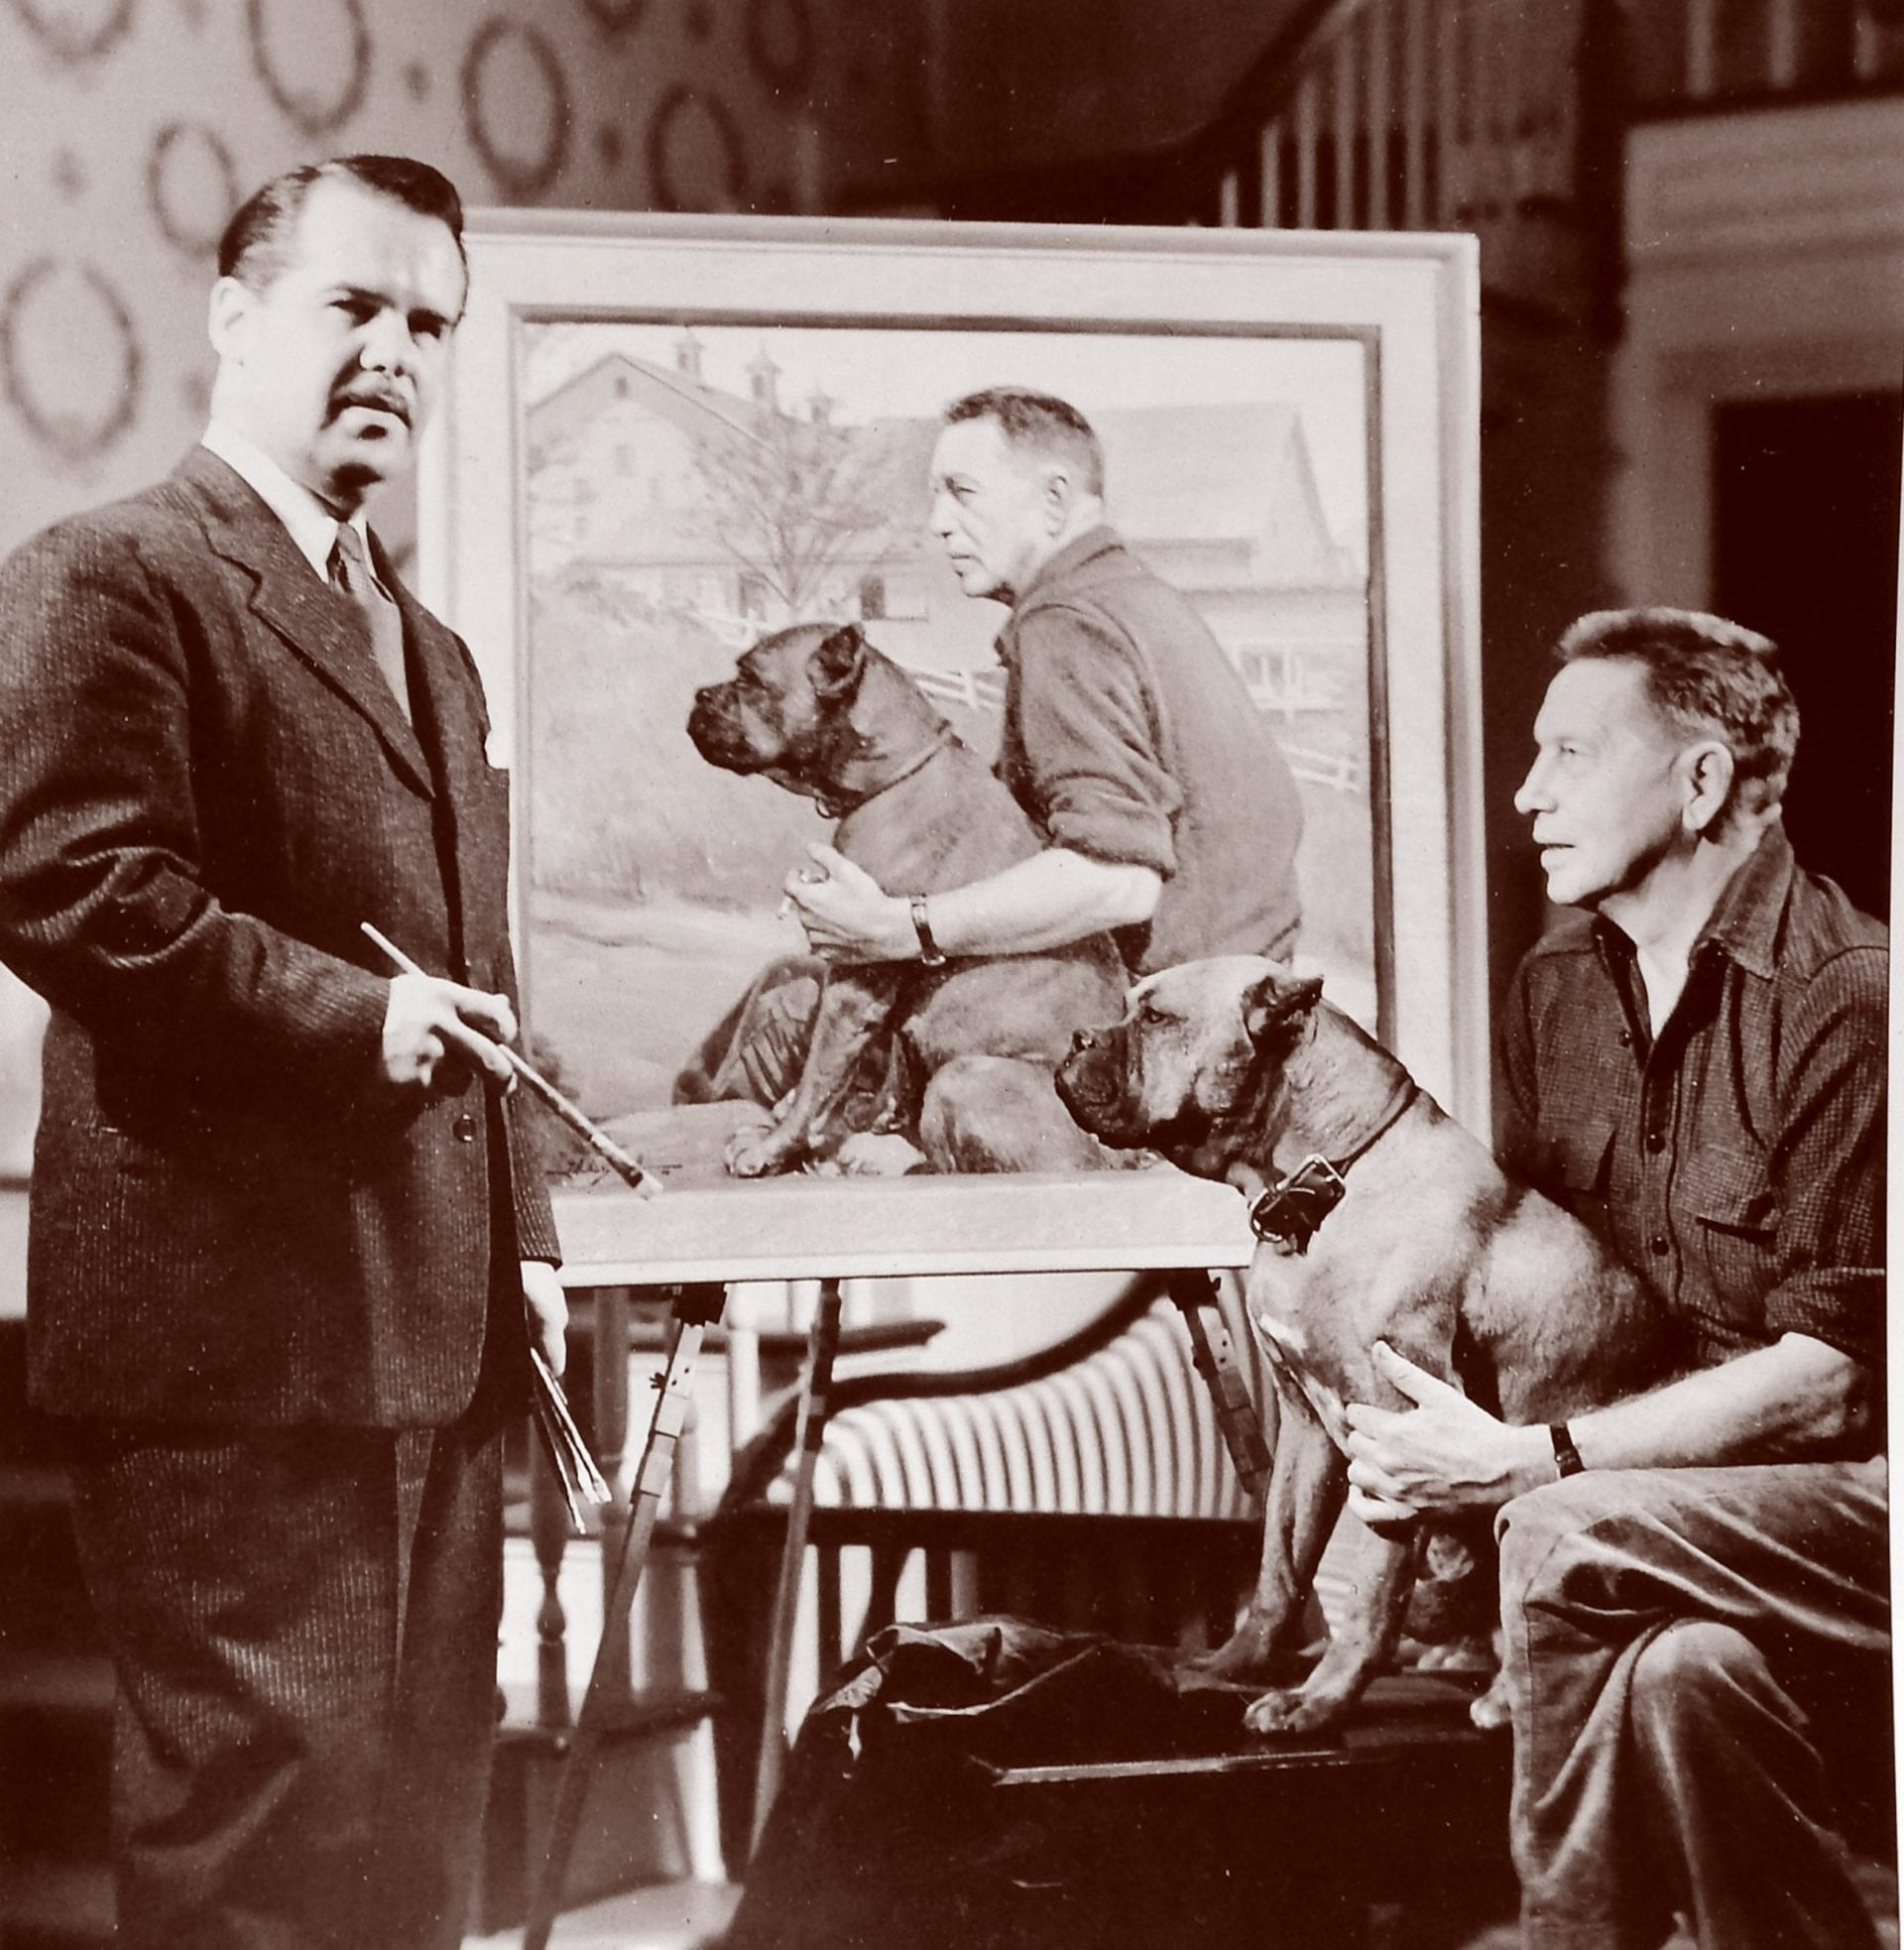 J. Anthony Wills posing with Bromfield and Bromfield portrait painting